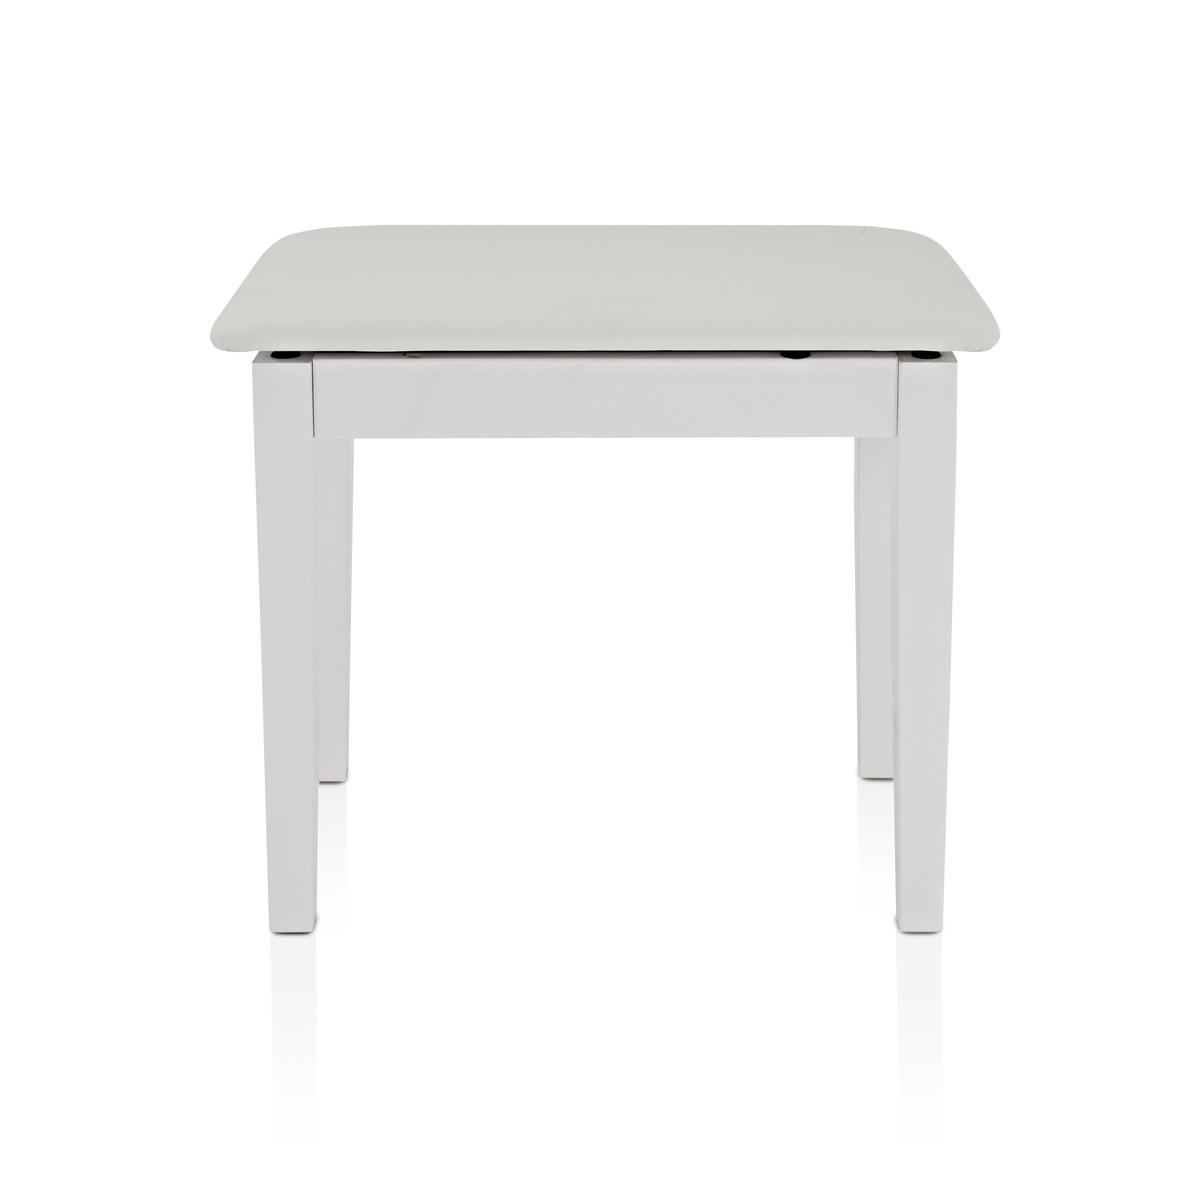 Piano Stool with Storage by Gear4music White  sc 1 st  Gear4music & Piano Stool with Storage by Gear4music White at Gear4music.com islam-shia.org